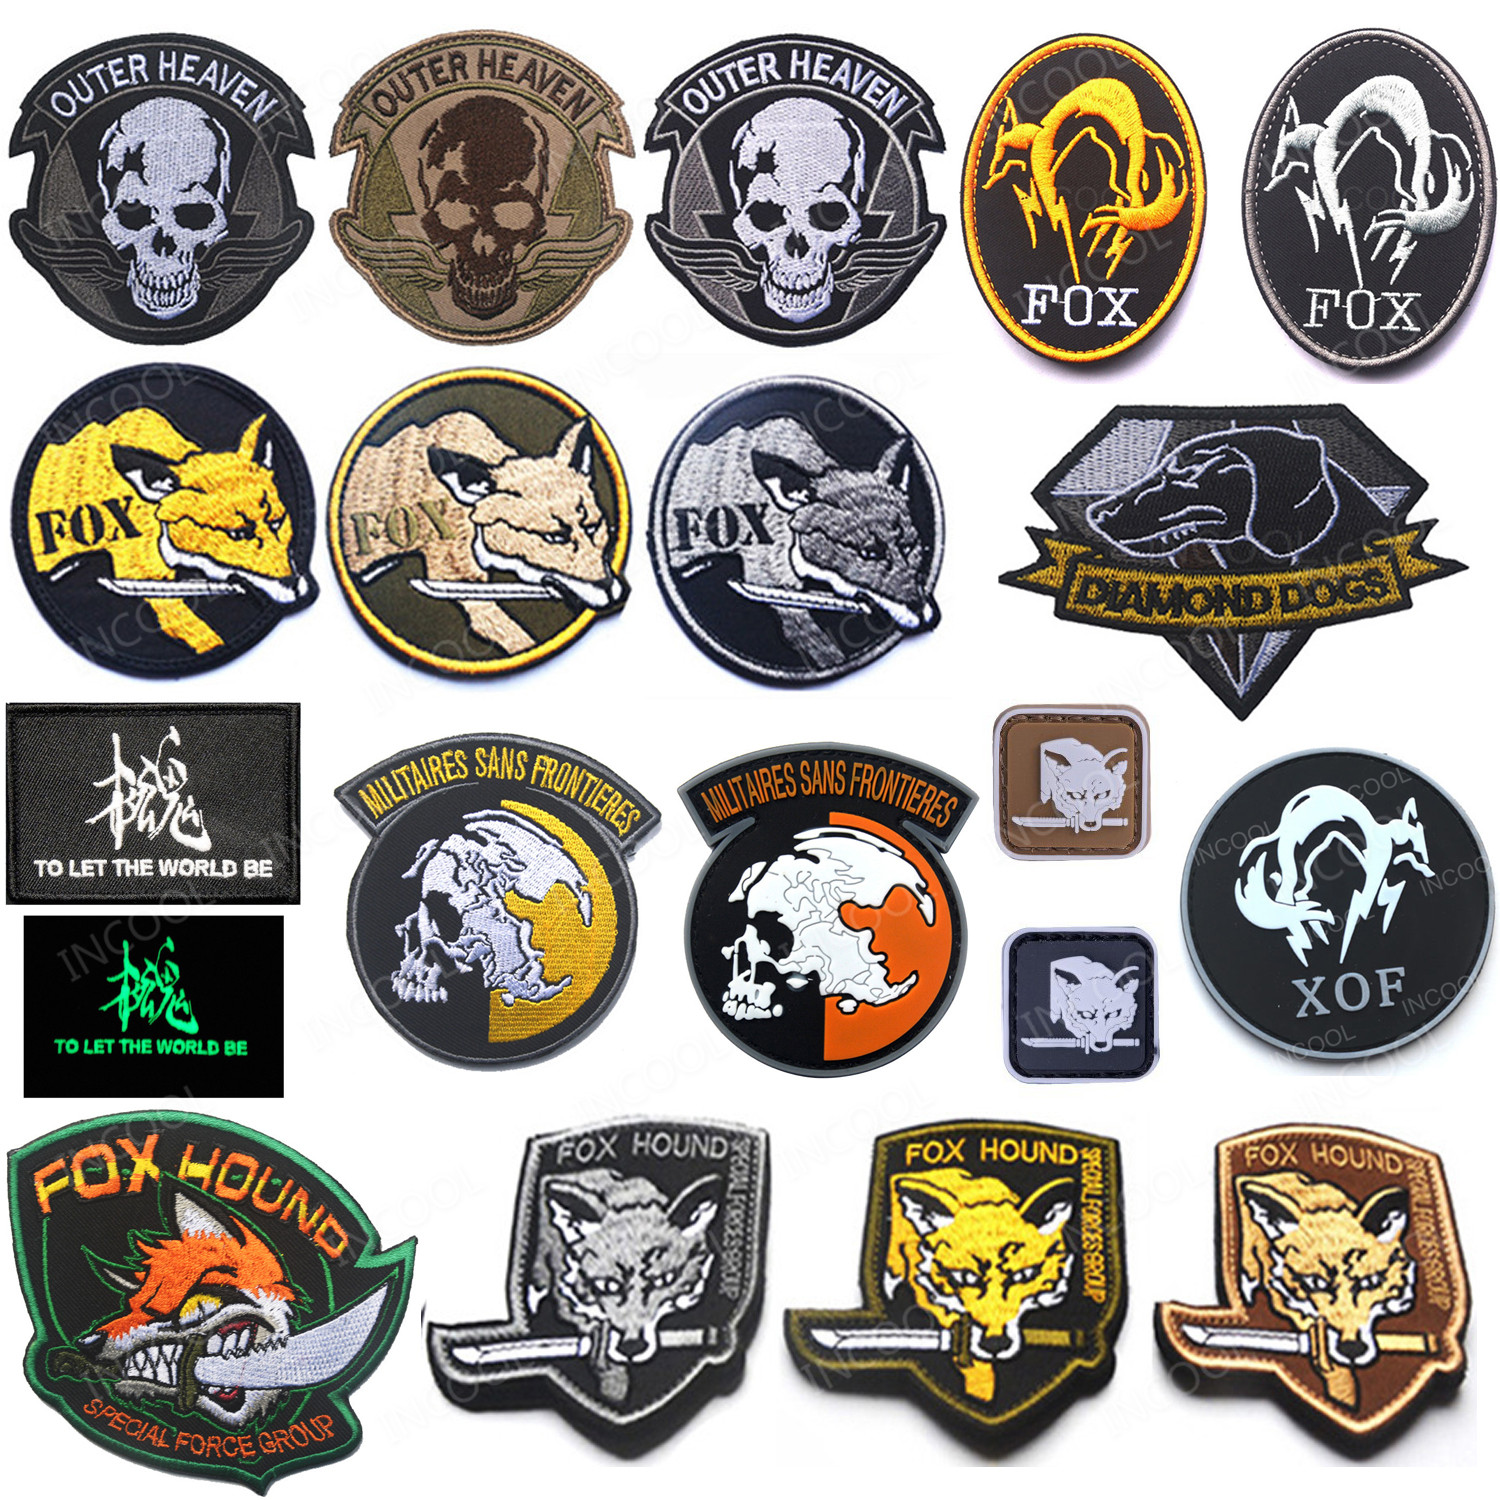 Badge Patch PVC Rubber Army Military Patches Morale Patch Hook /& Loop Patches